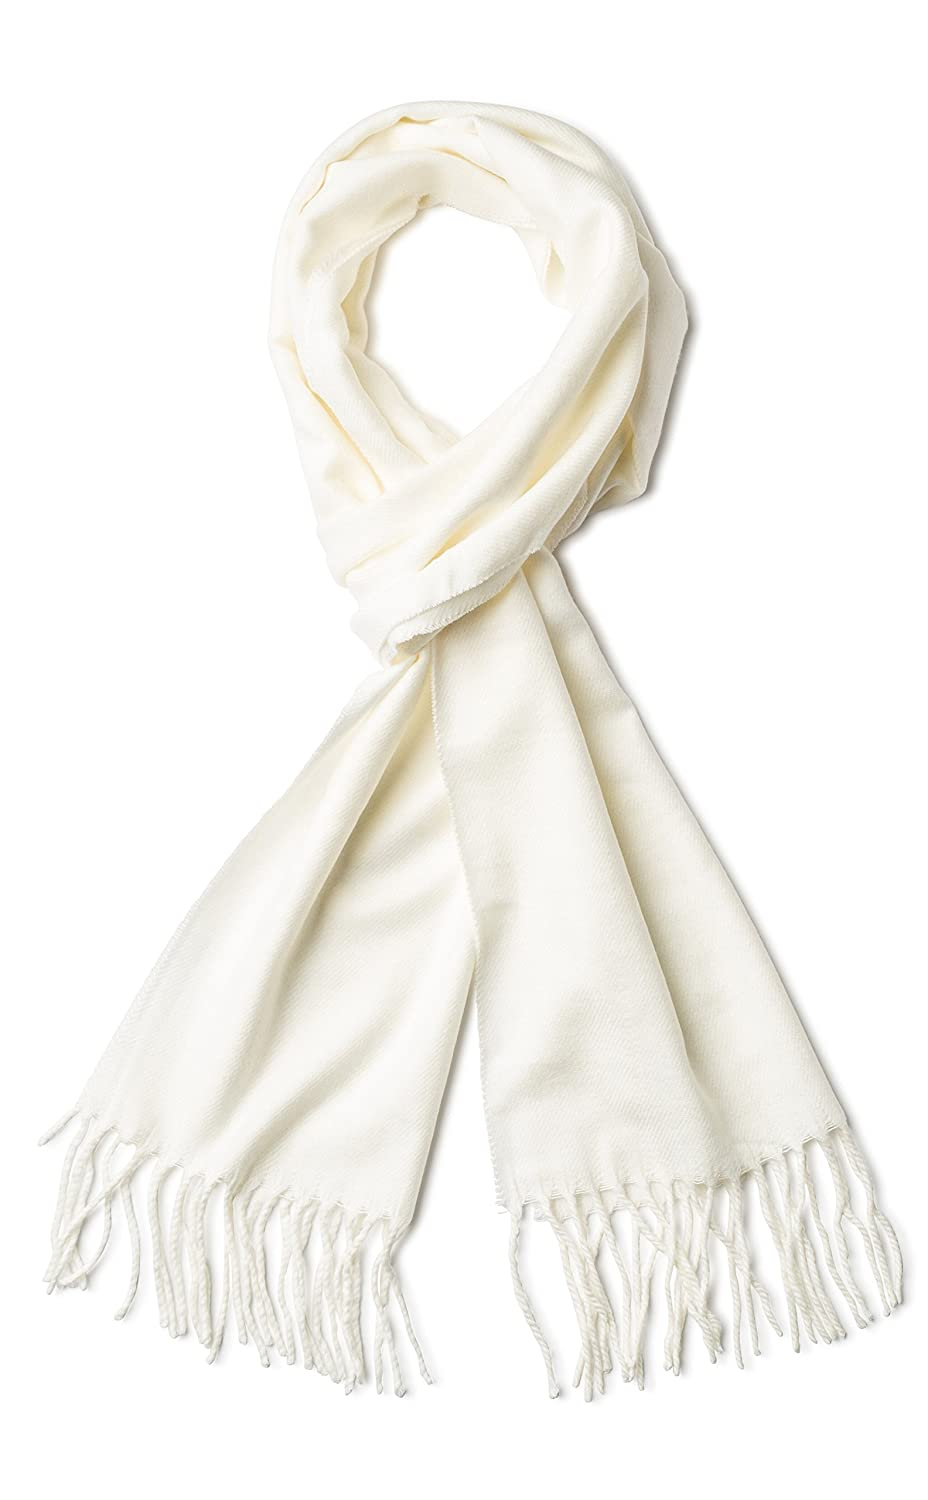 Edwardian Men's Formal Wear Veronz Super Soft Luxurious Classic Cashmere Feel Winter Scarf With Gift Box $17.98 AT vintagedancer.com